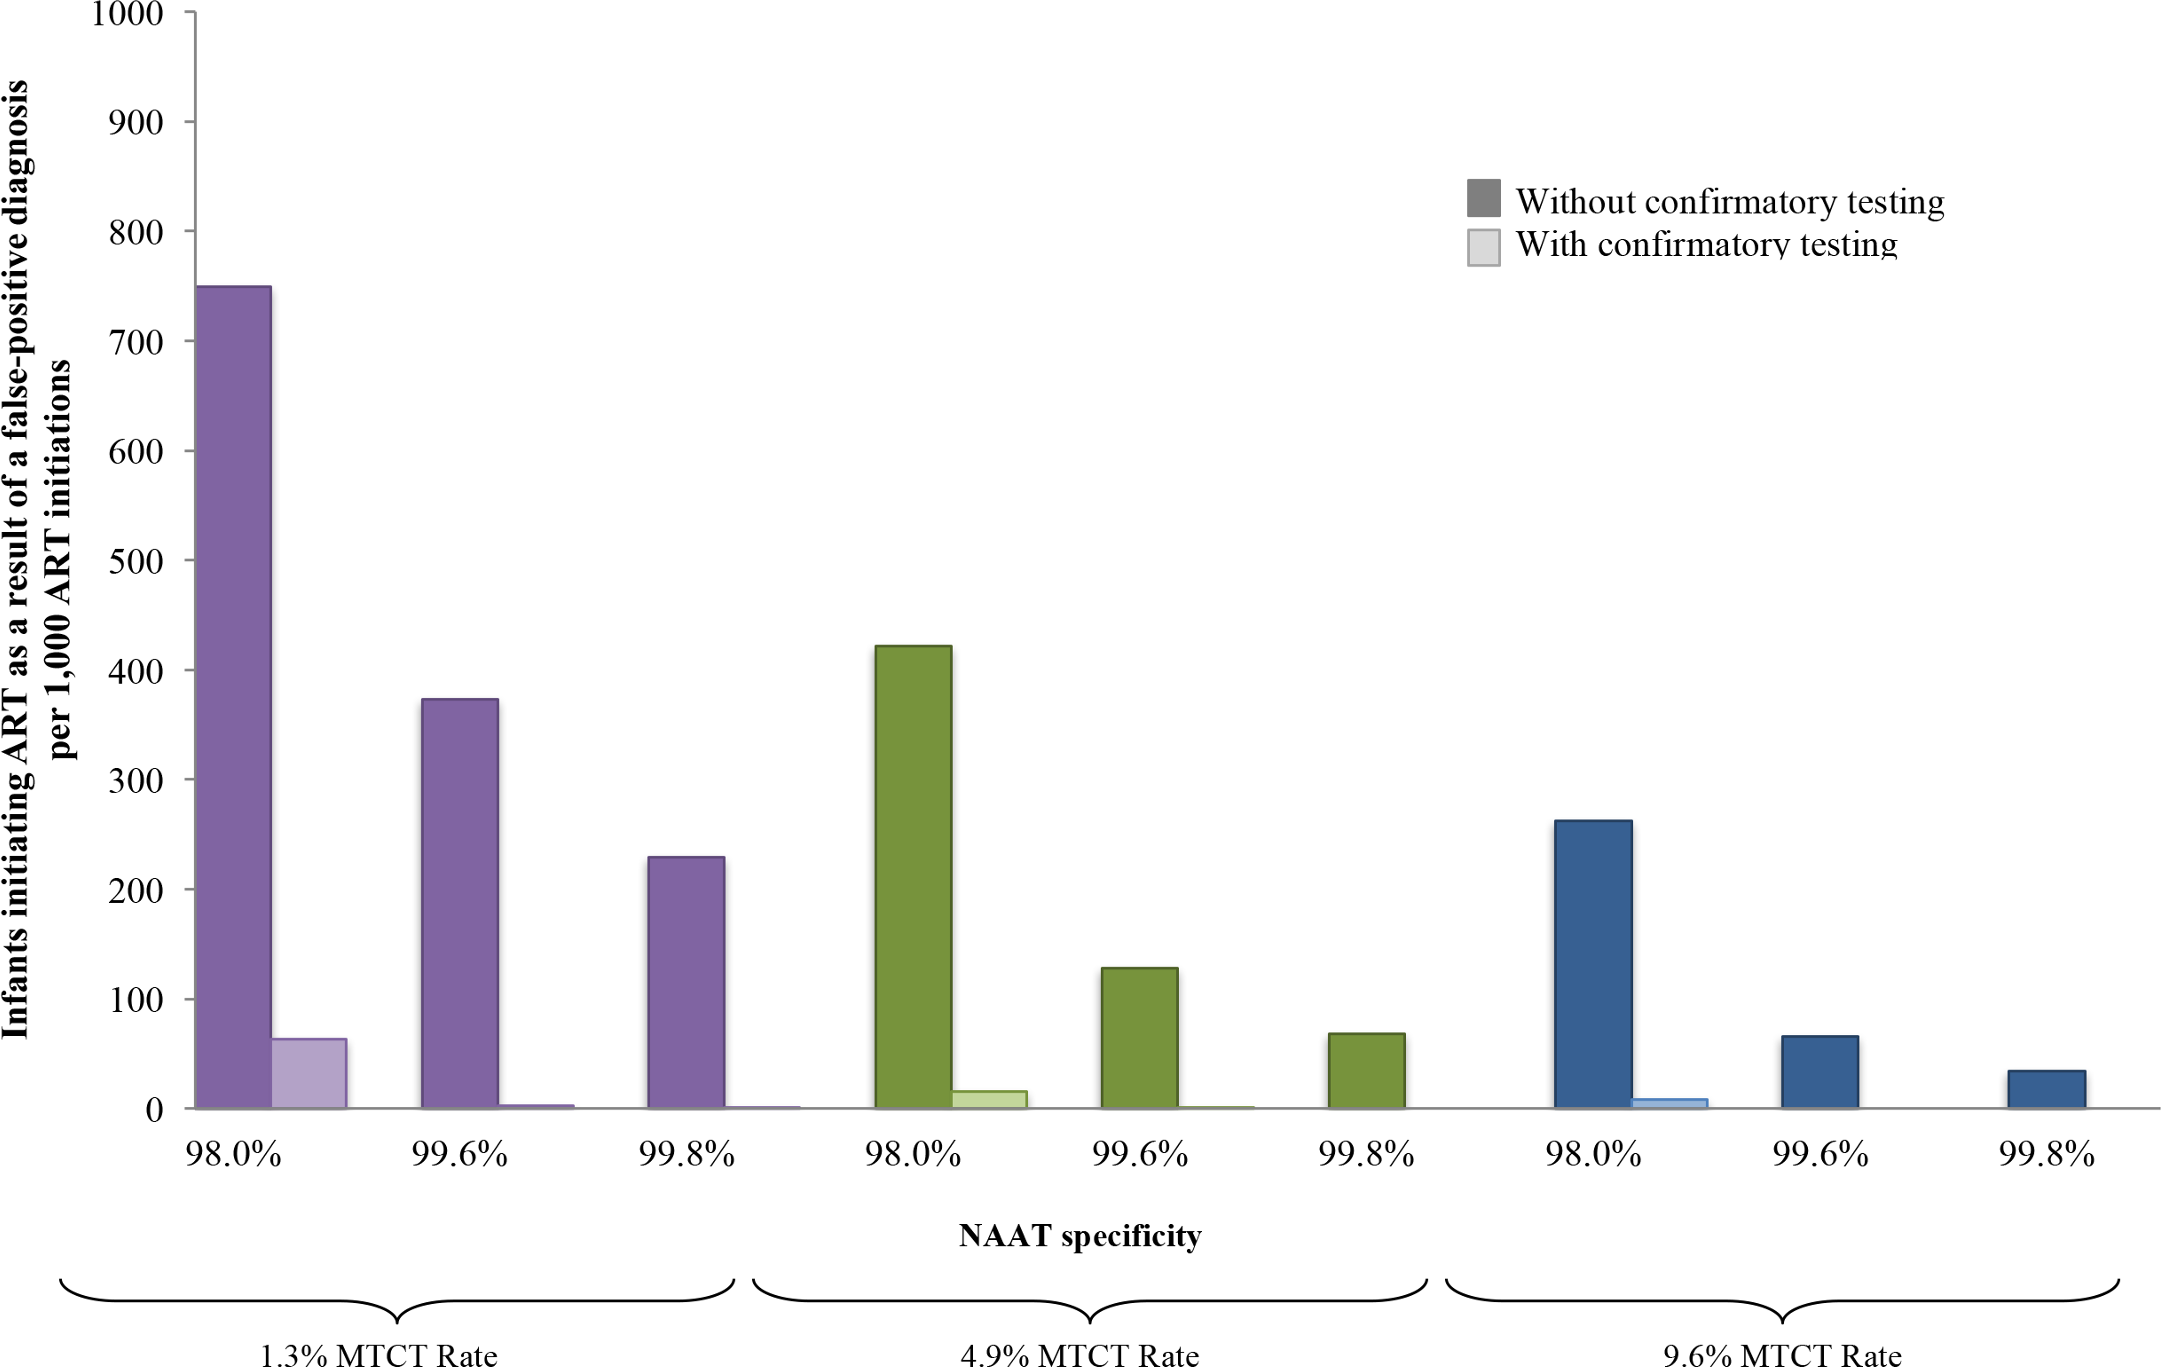 Number of infants linked to ART after false-positive diagnosis, per 1,000 ART initiations, by assay specificity and MTCT risk.